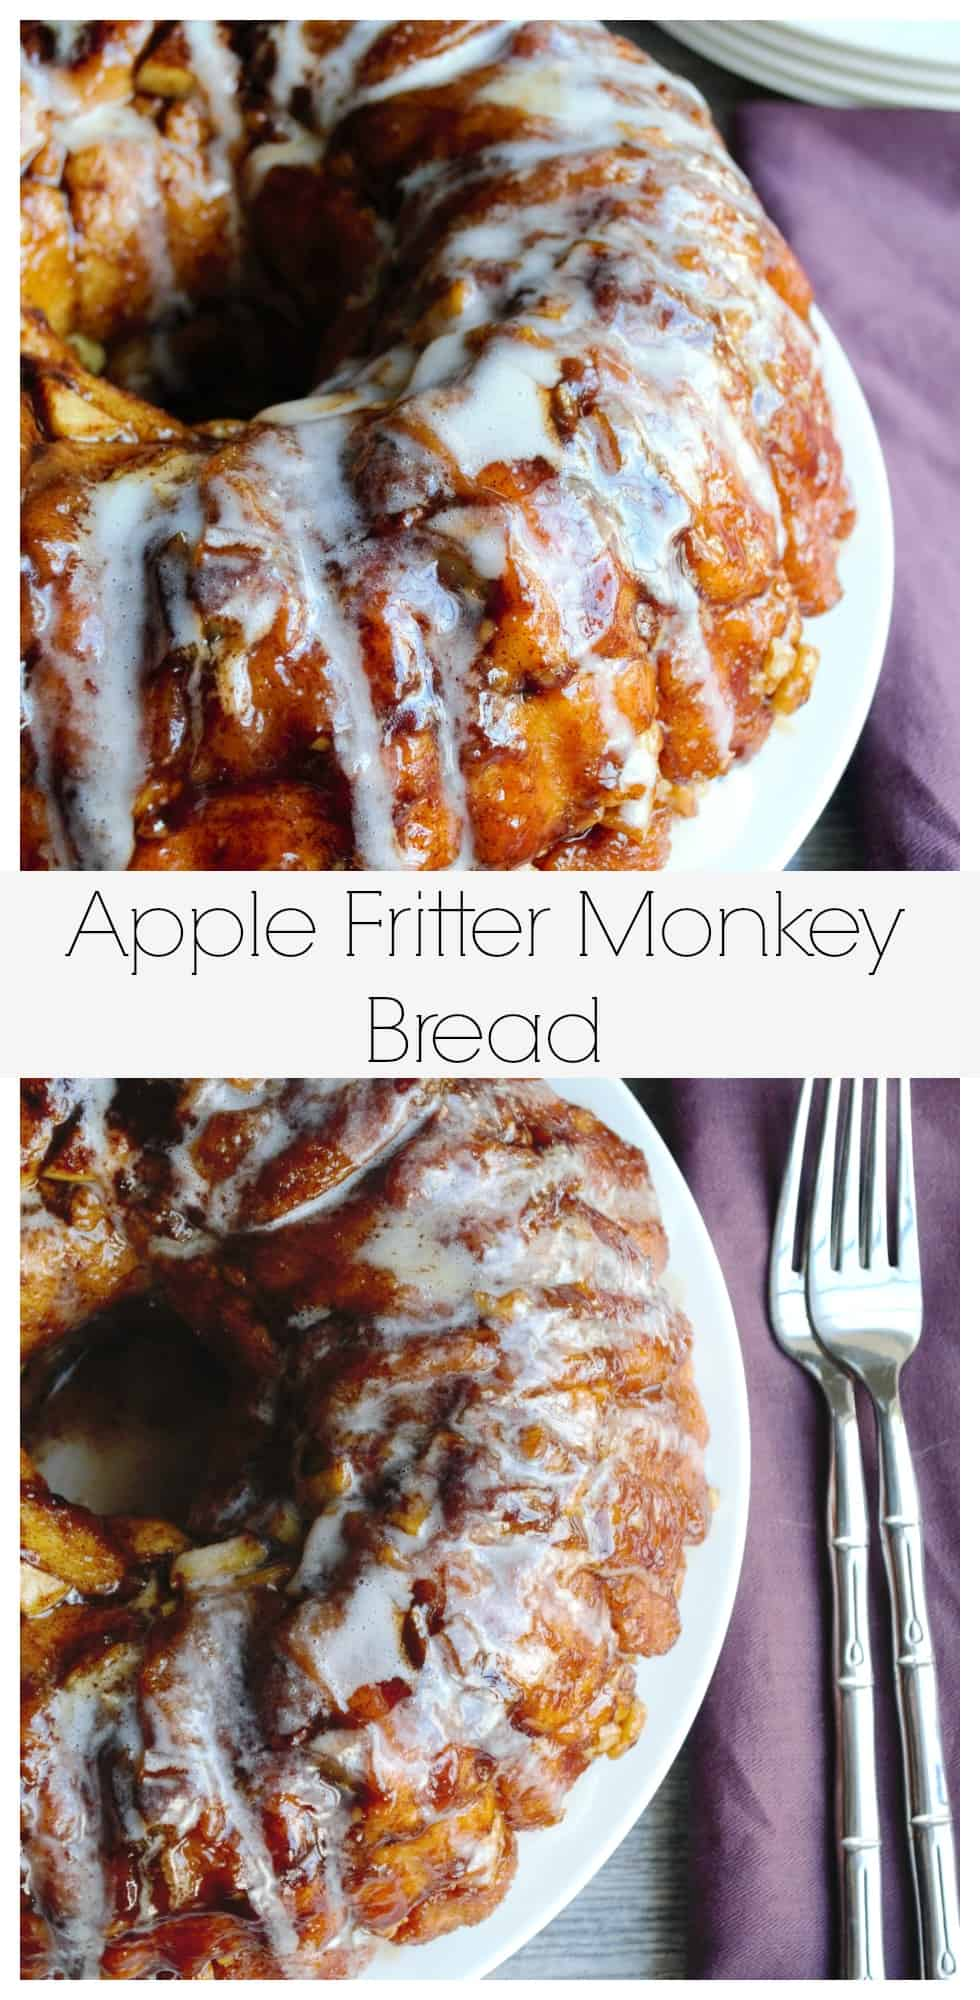 Apple Fritter Monkey Bread | This Apple Fritter Monkey Bread is tender, crunchy and gently layered with apples, walnuts and cinnamon. Perfection! | Pack Momma | http://www.packmomma.com